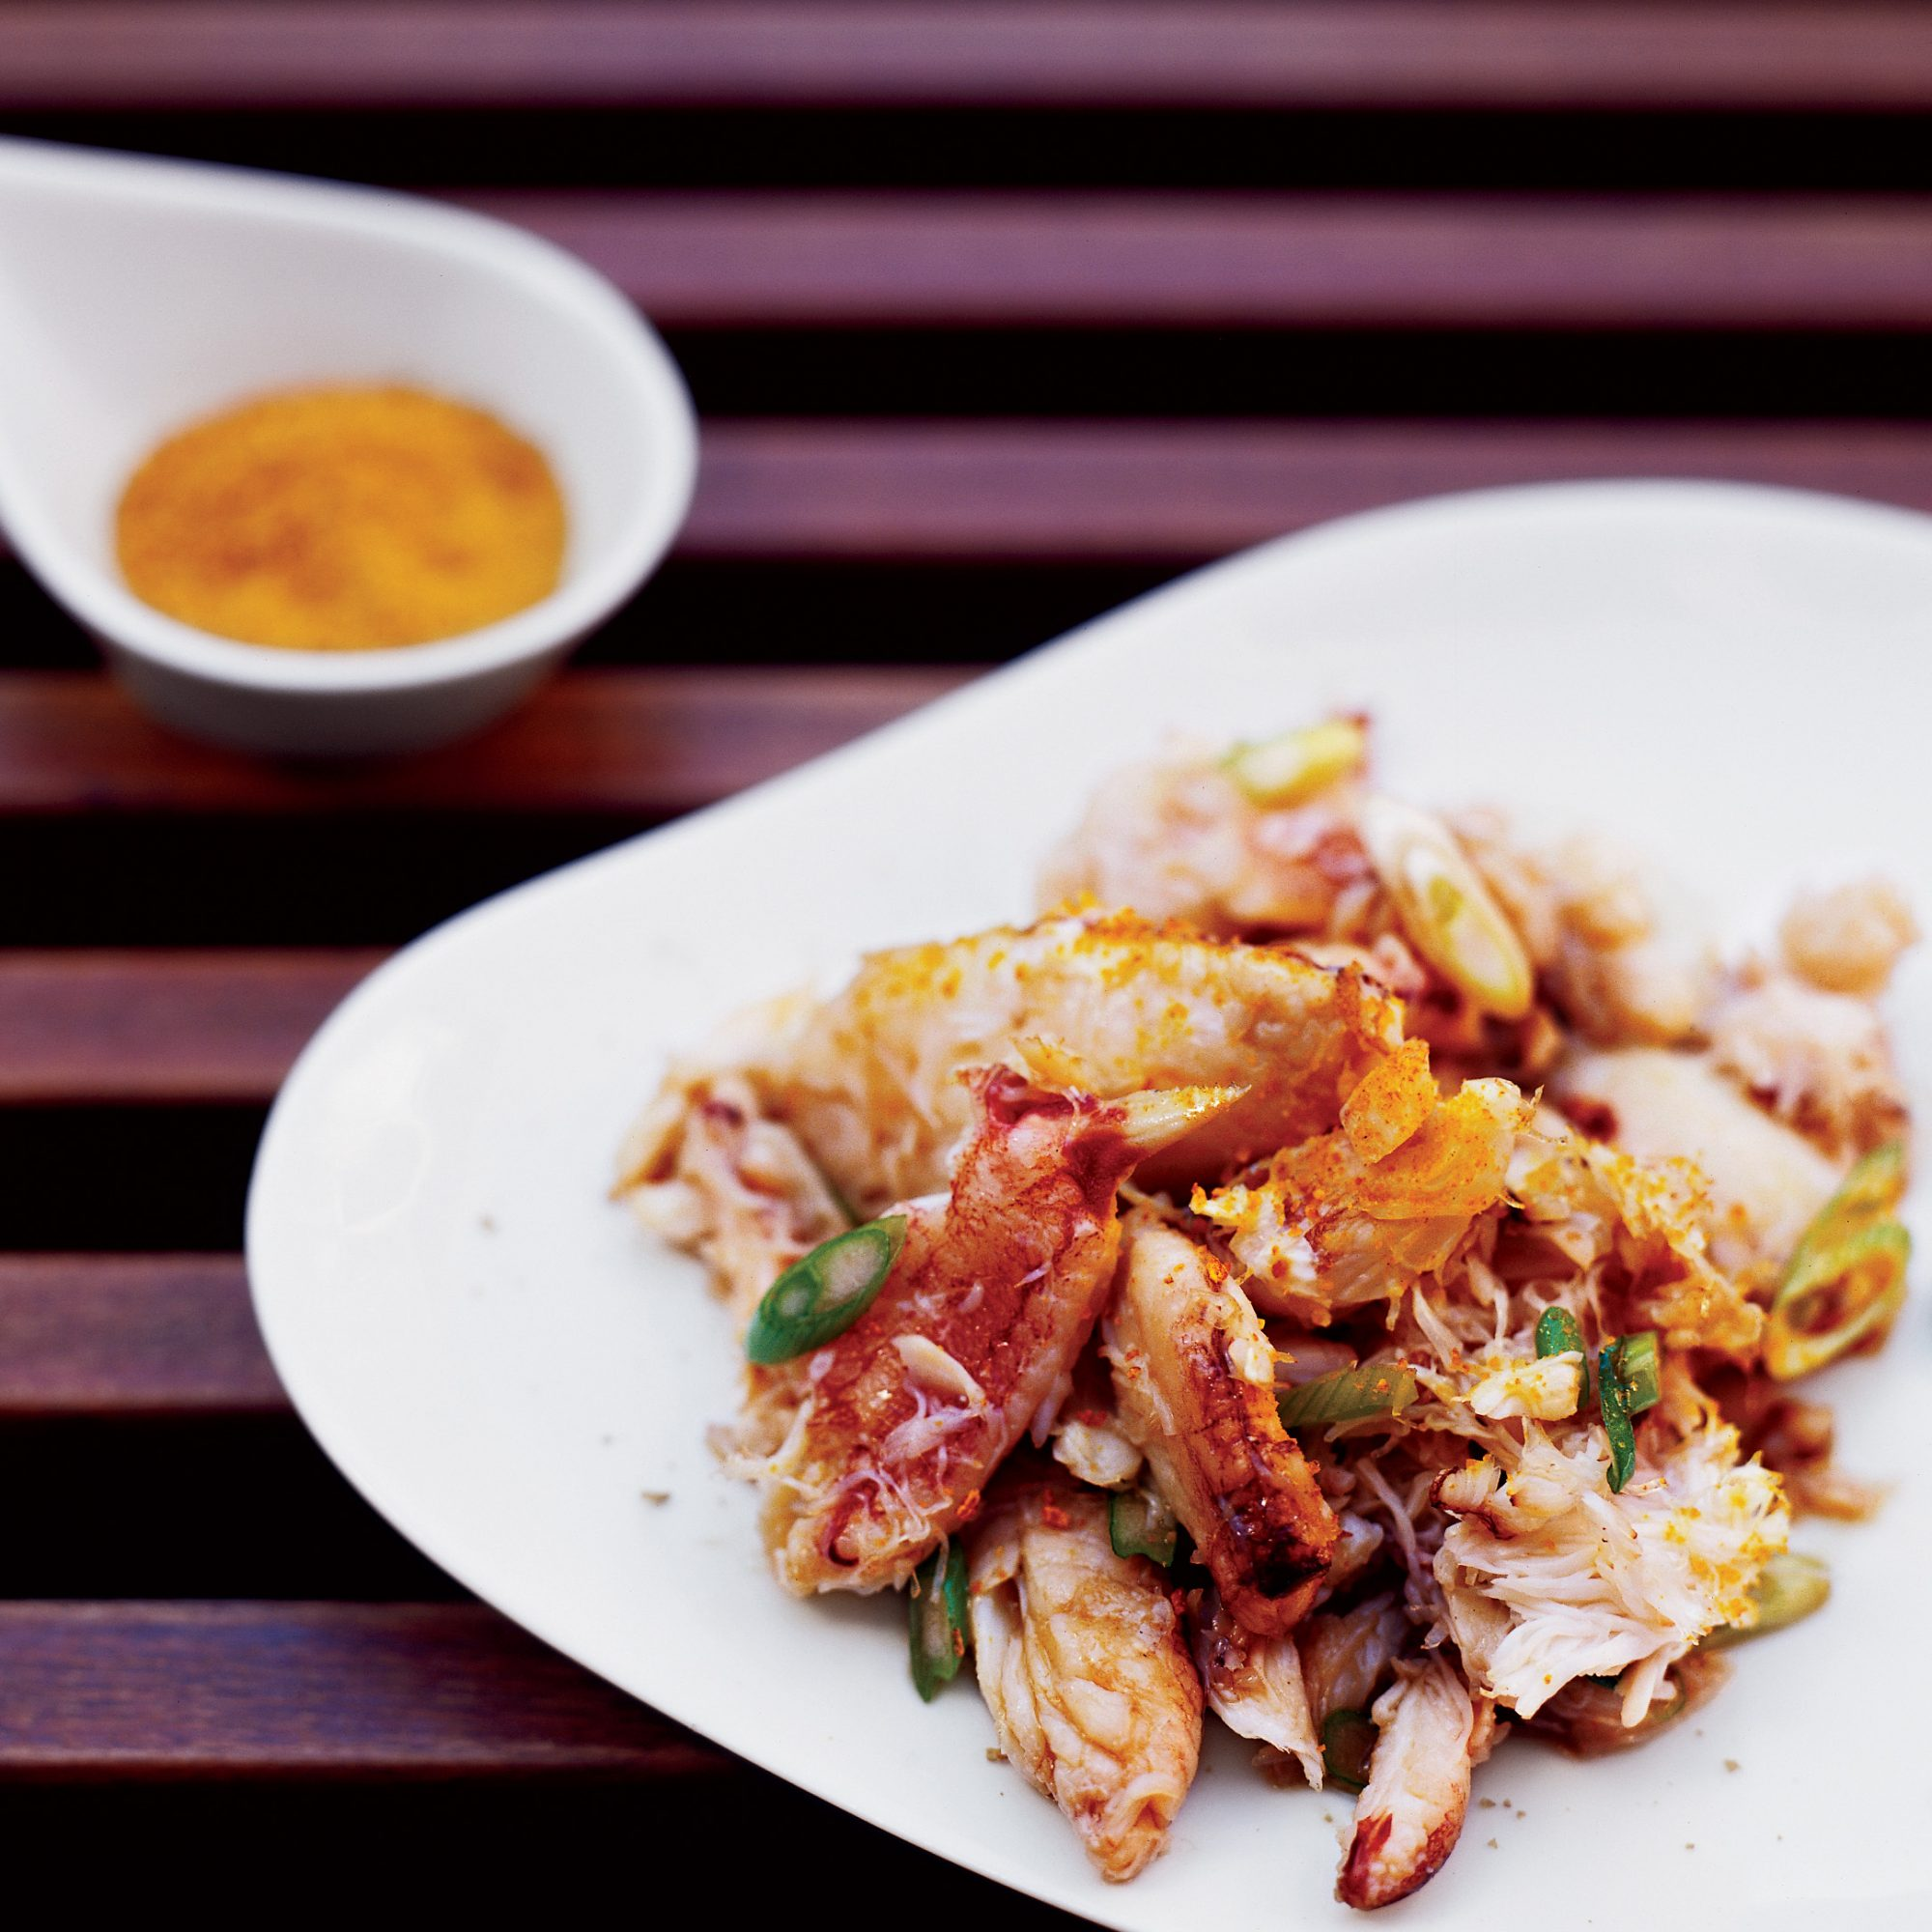 Crab Salad with Ginger and Dried Orange Peel